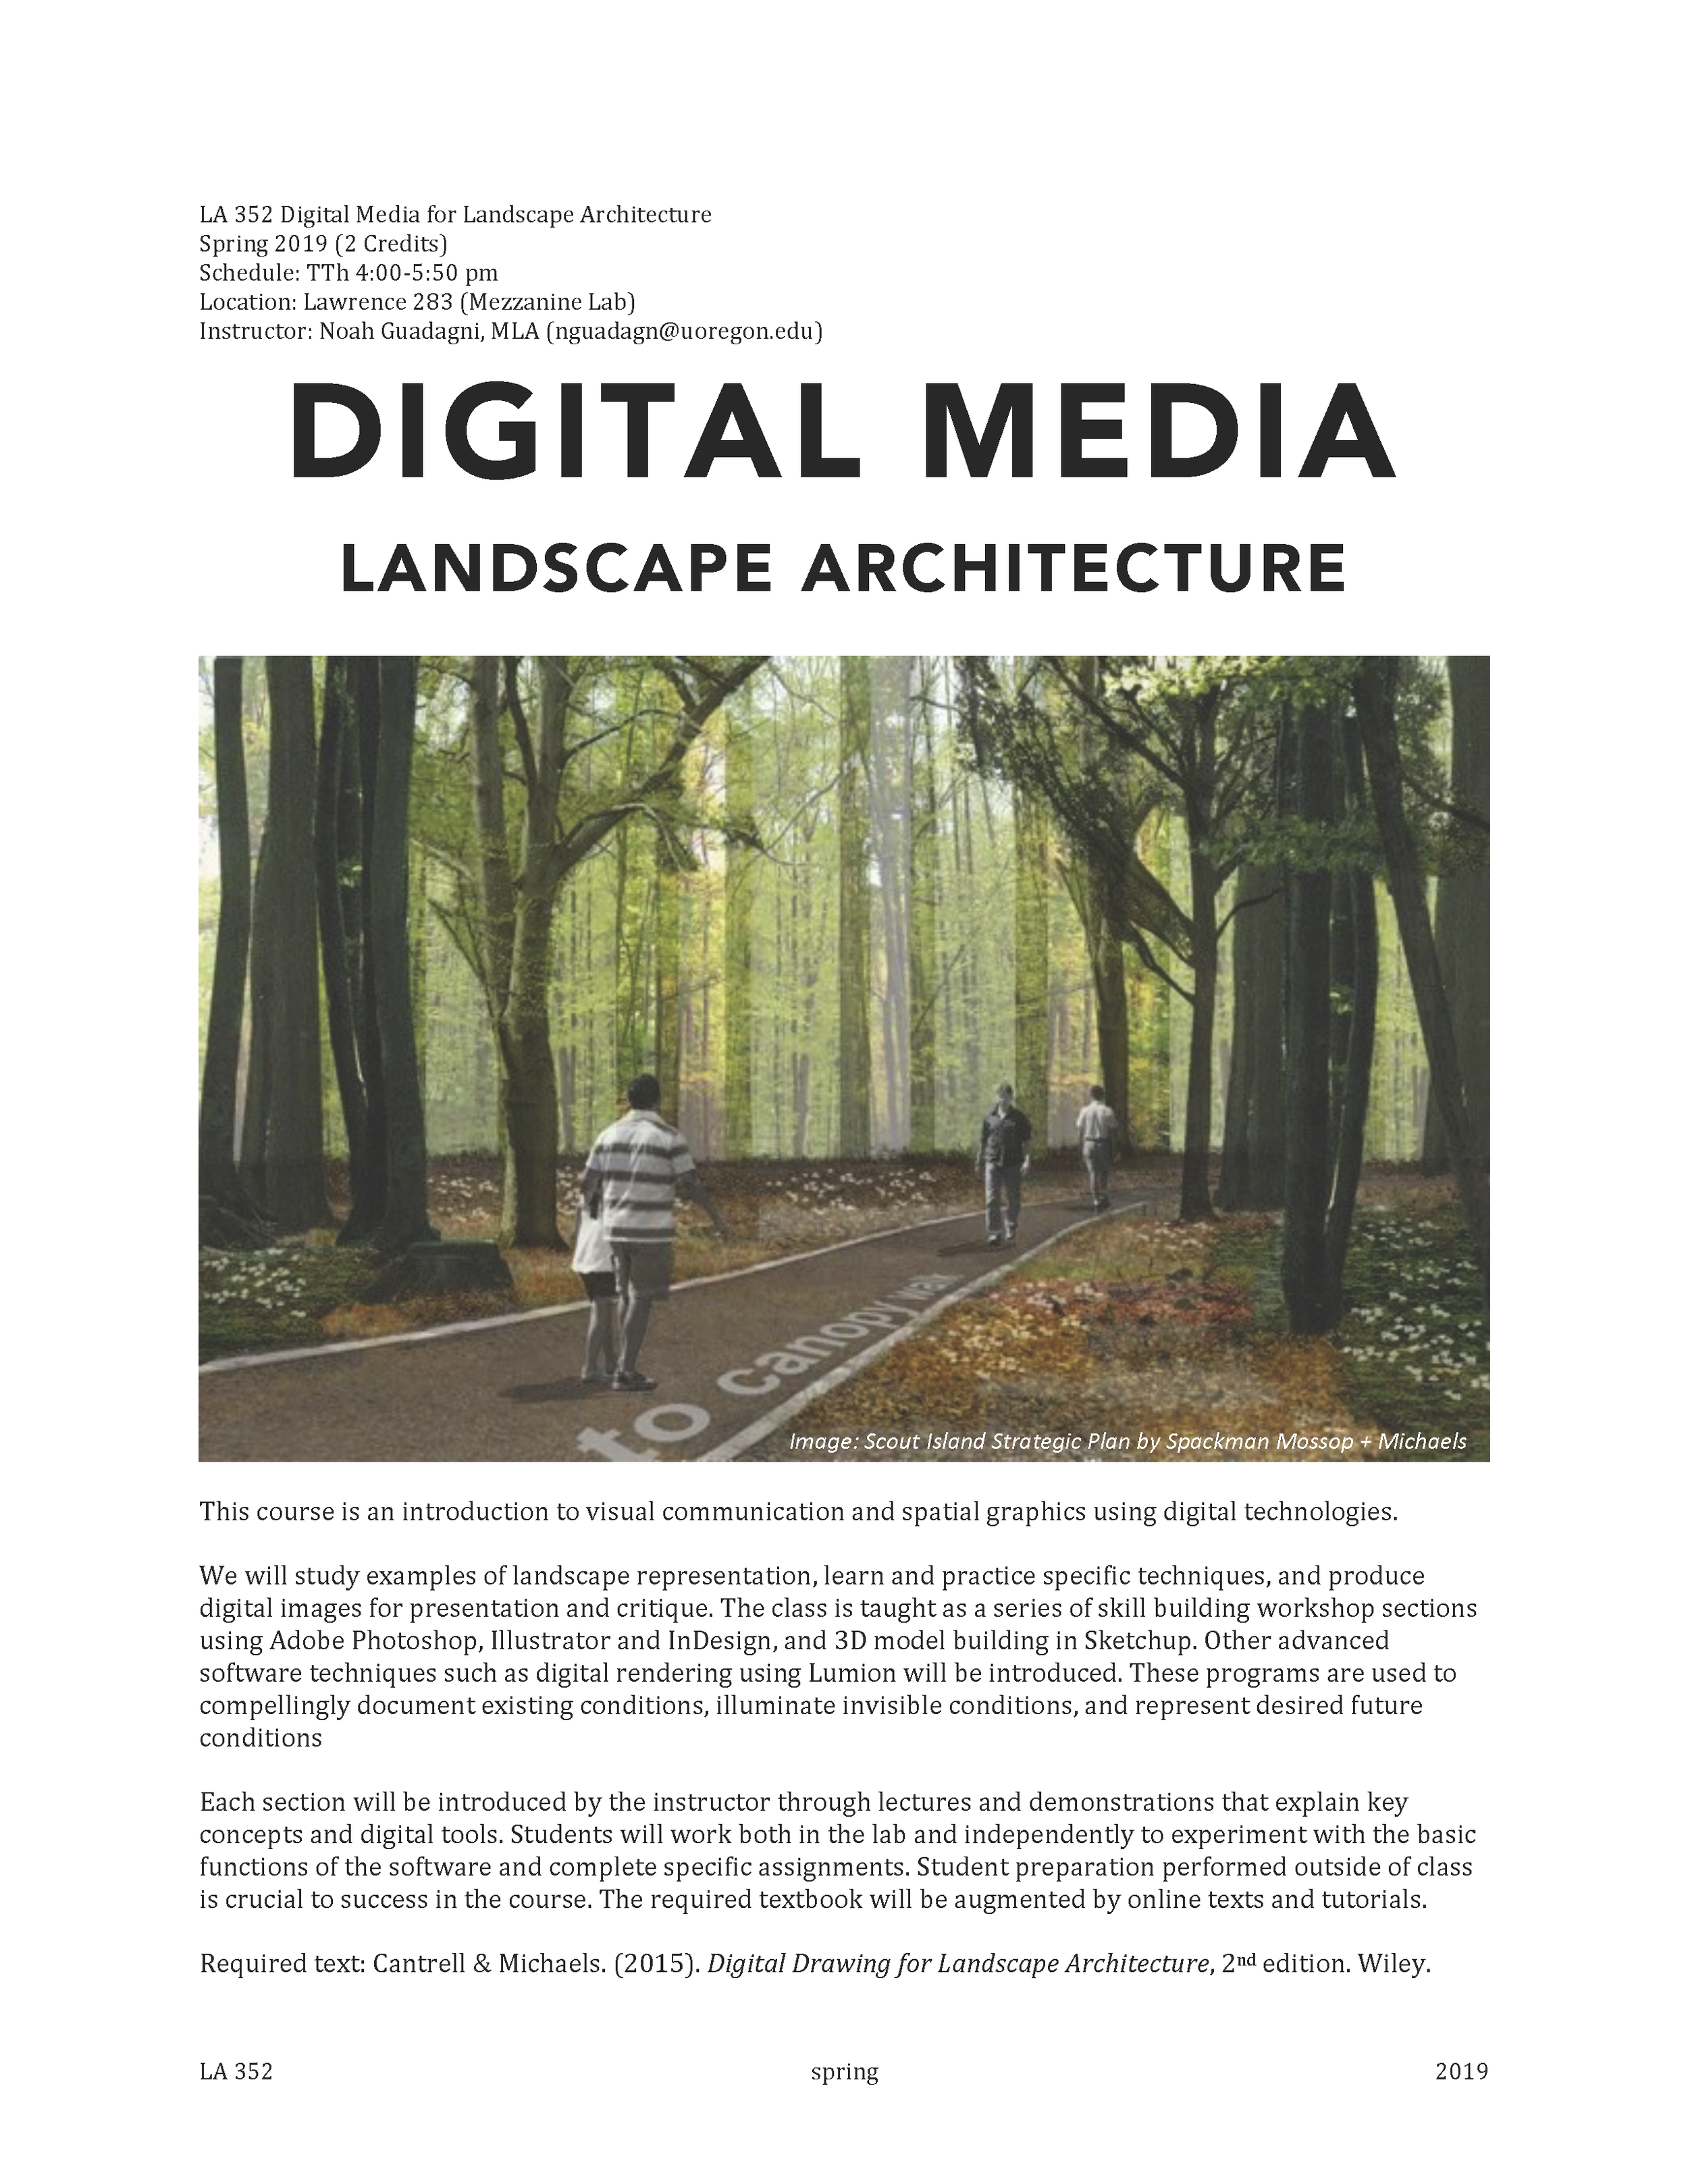 LA 352 Digital Media course description 2019.png